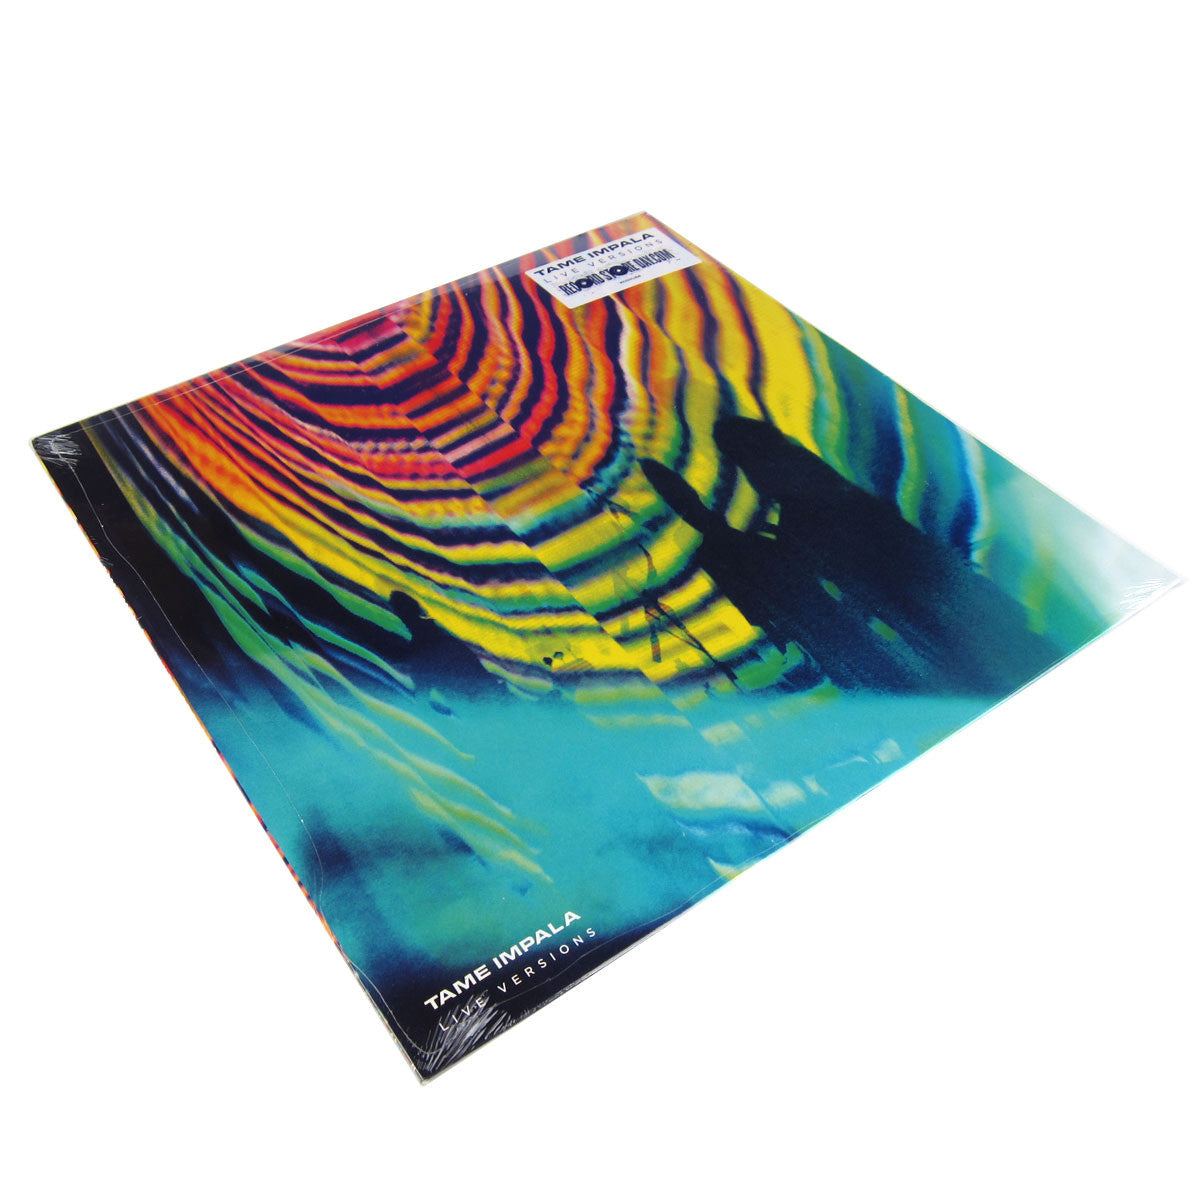 Tame Impala: Live Versions Vinyl LP (Record Store Day 2014)